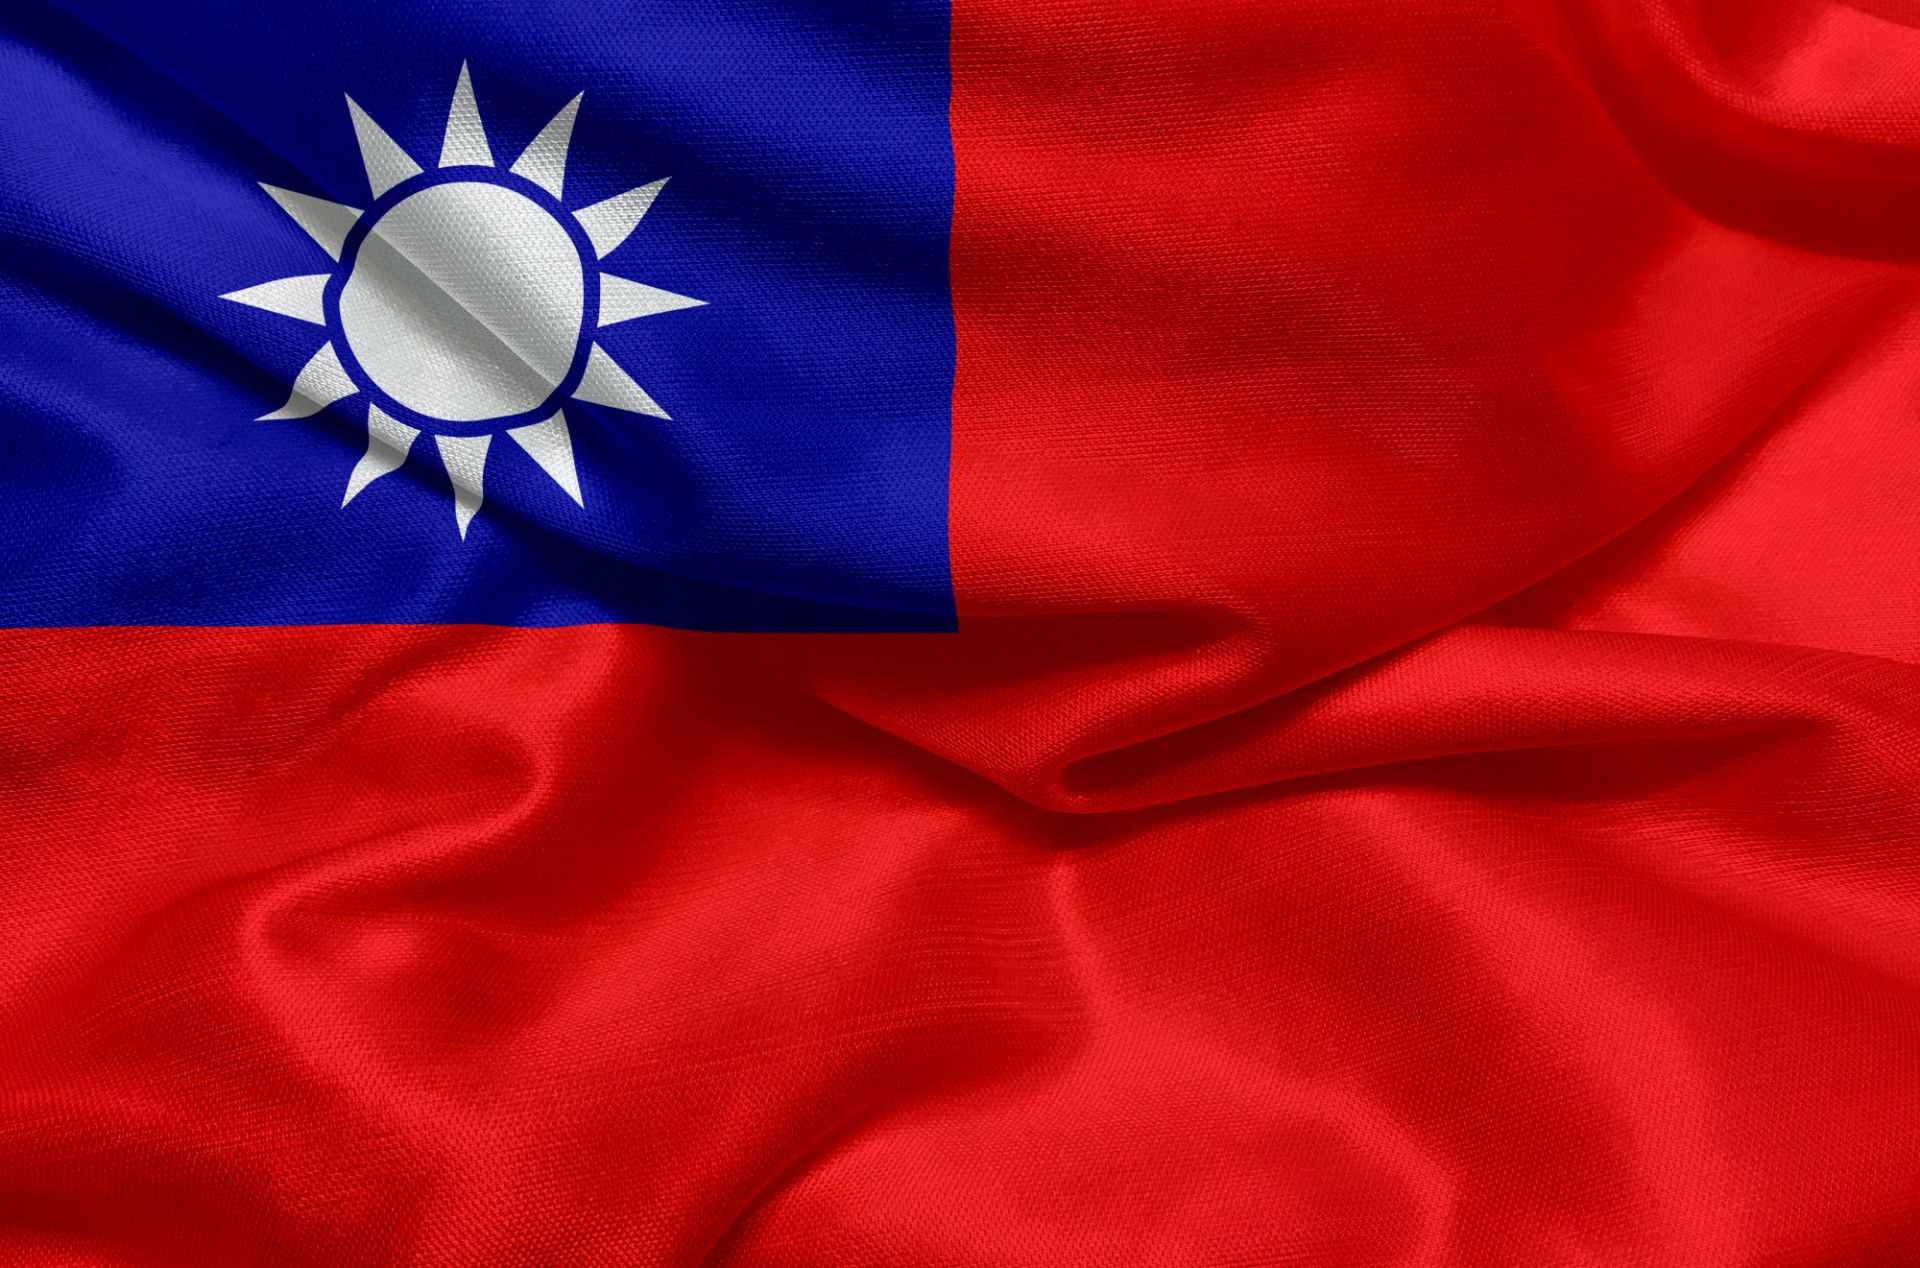 Flag of the Republic of China (Taiwan)